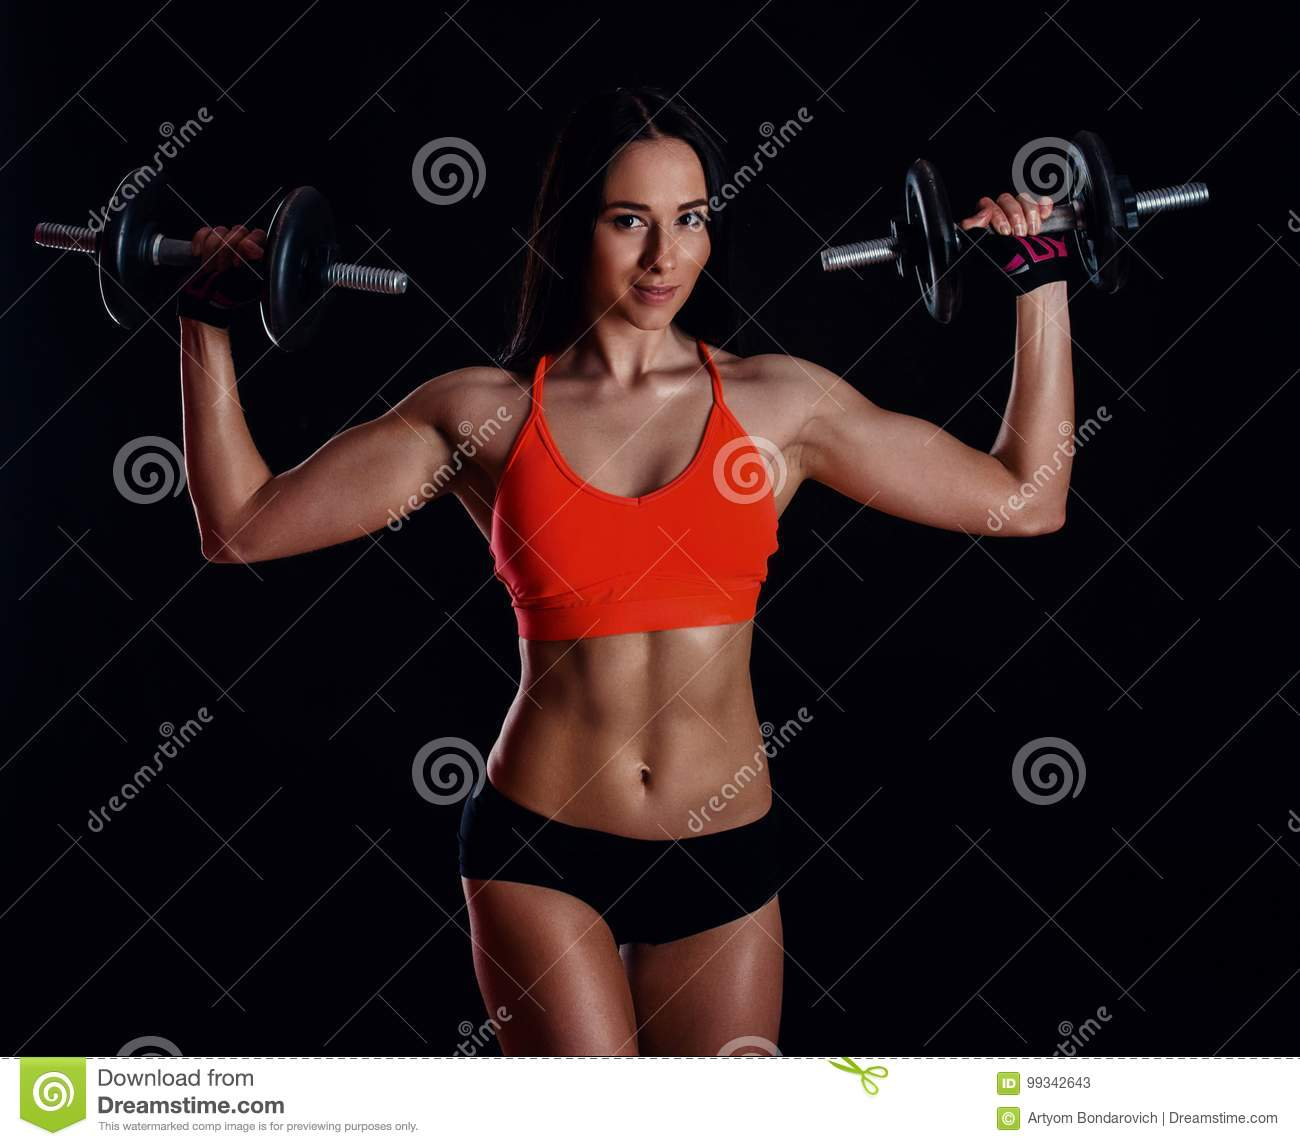 Nice girl doing workout with dumbbells isolated over black background. Athletic young woman do a fitness workout with weights